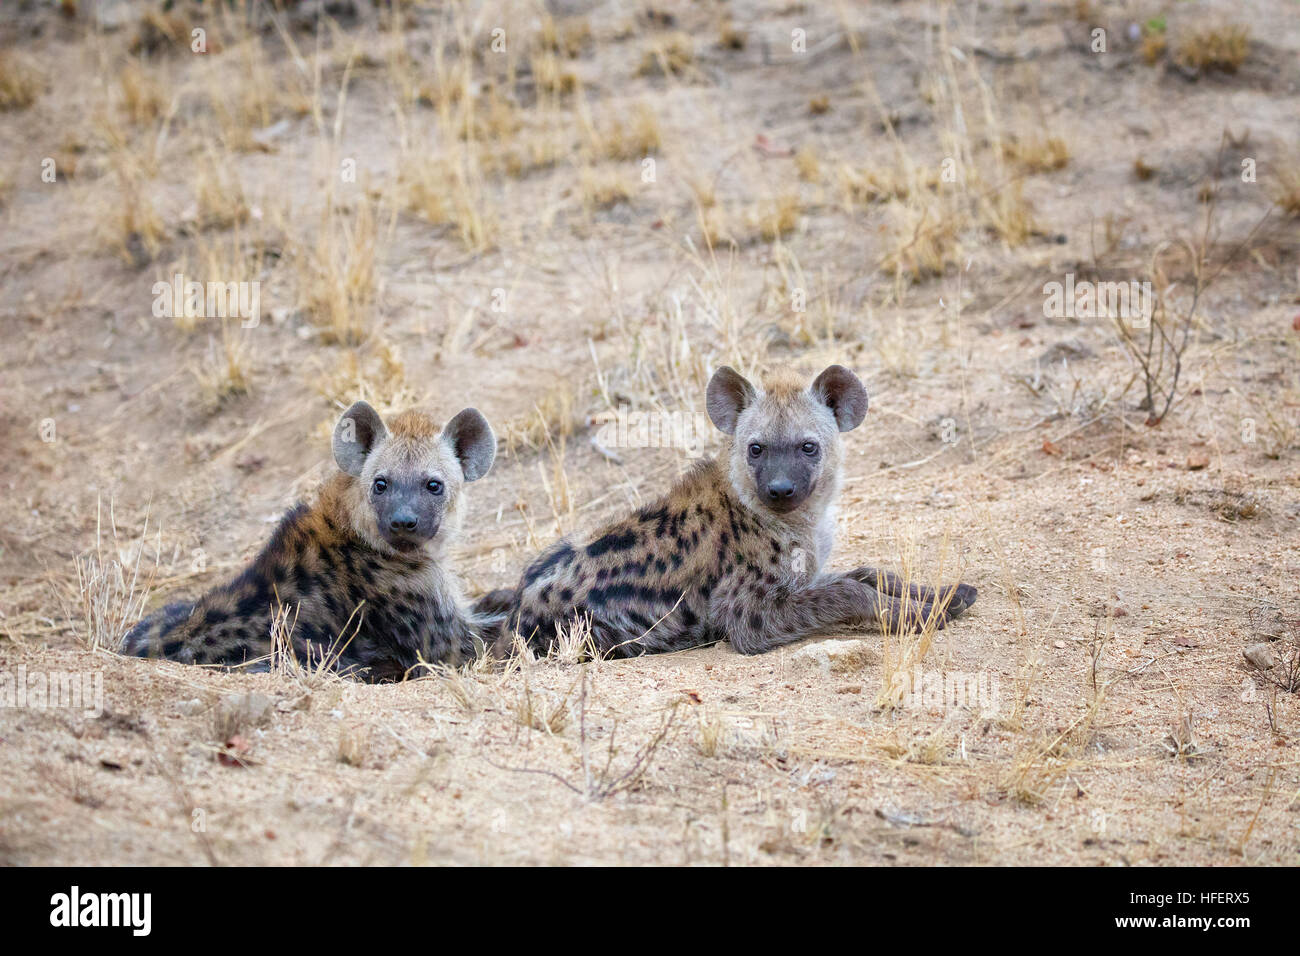 To young spotted hyena cubs emerge from their den. Kruger National Park, South Africa. - Stock Image